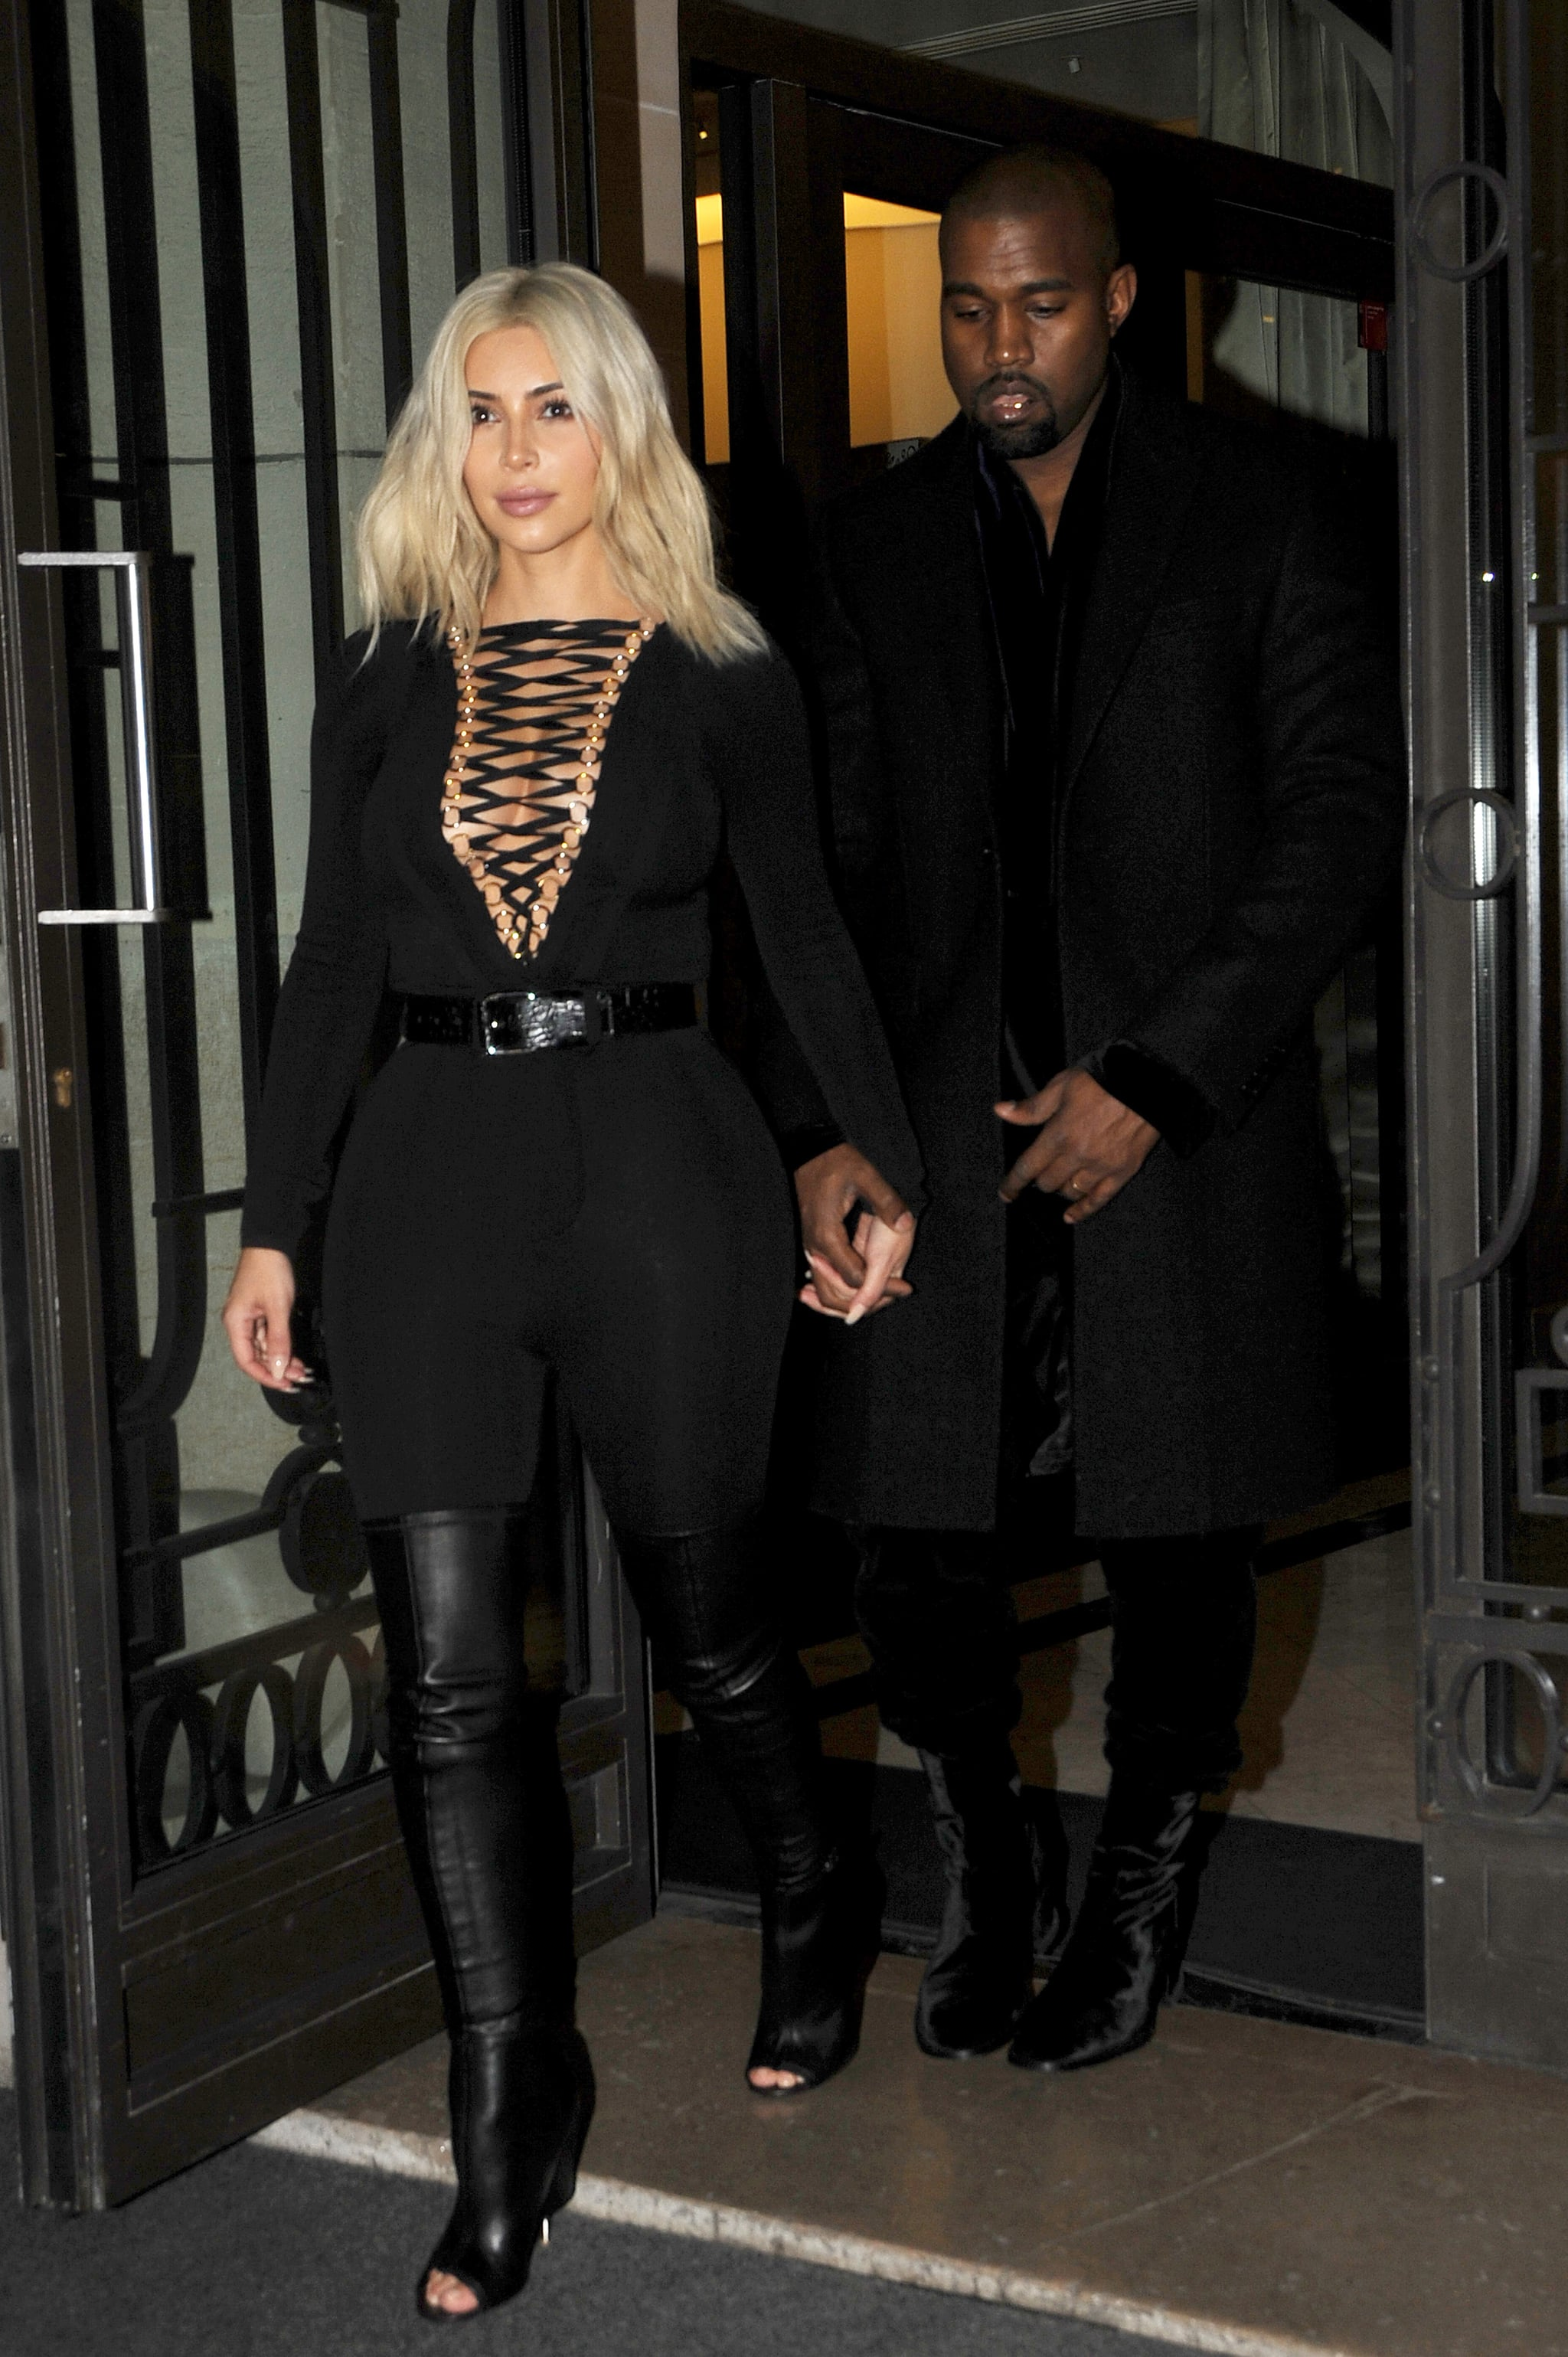 Celebrity gossip news forget kim 39 s new hair kanye 39 s boots are the talk of paris fashion - Parijs zoet ...